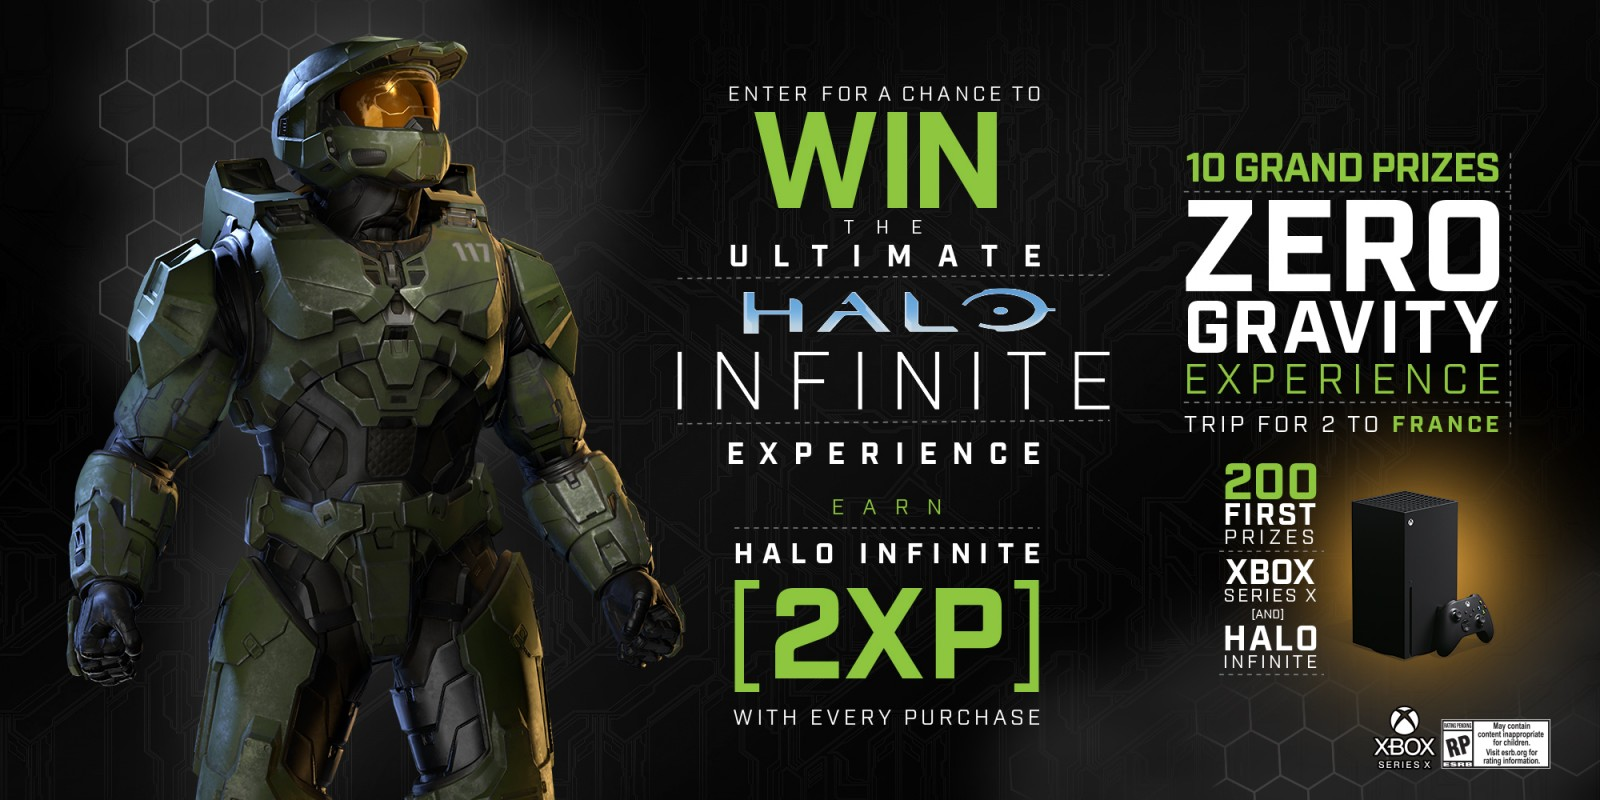 Halo Infinite Monster Energy Promo Win Xp An Xbox And More